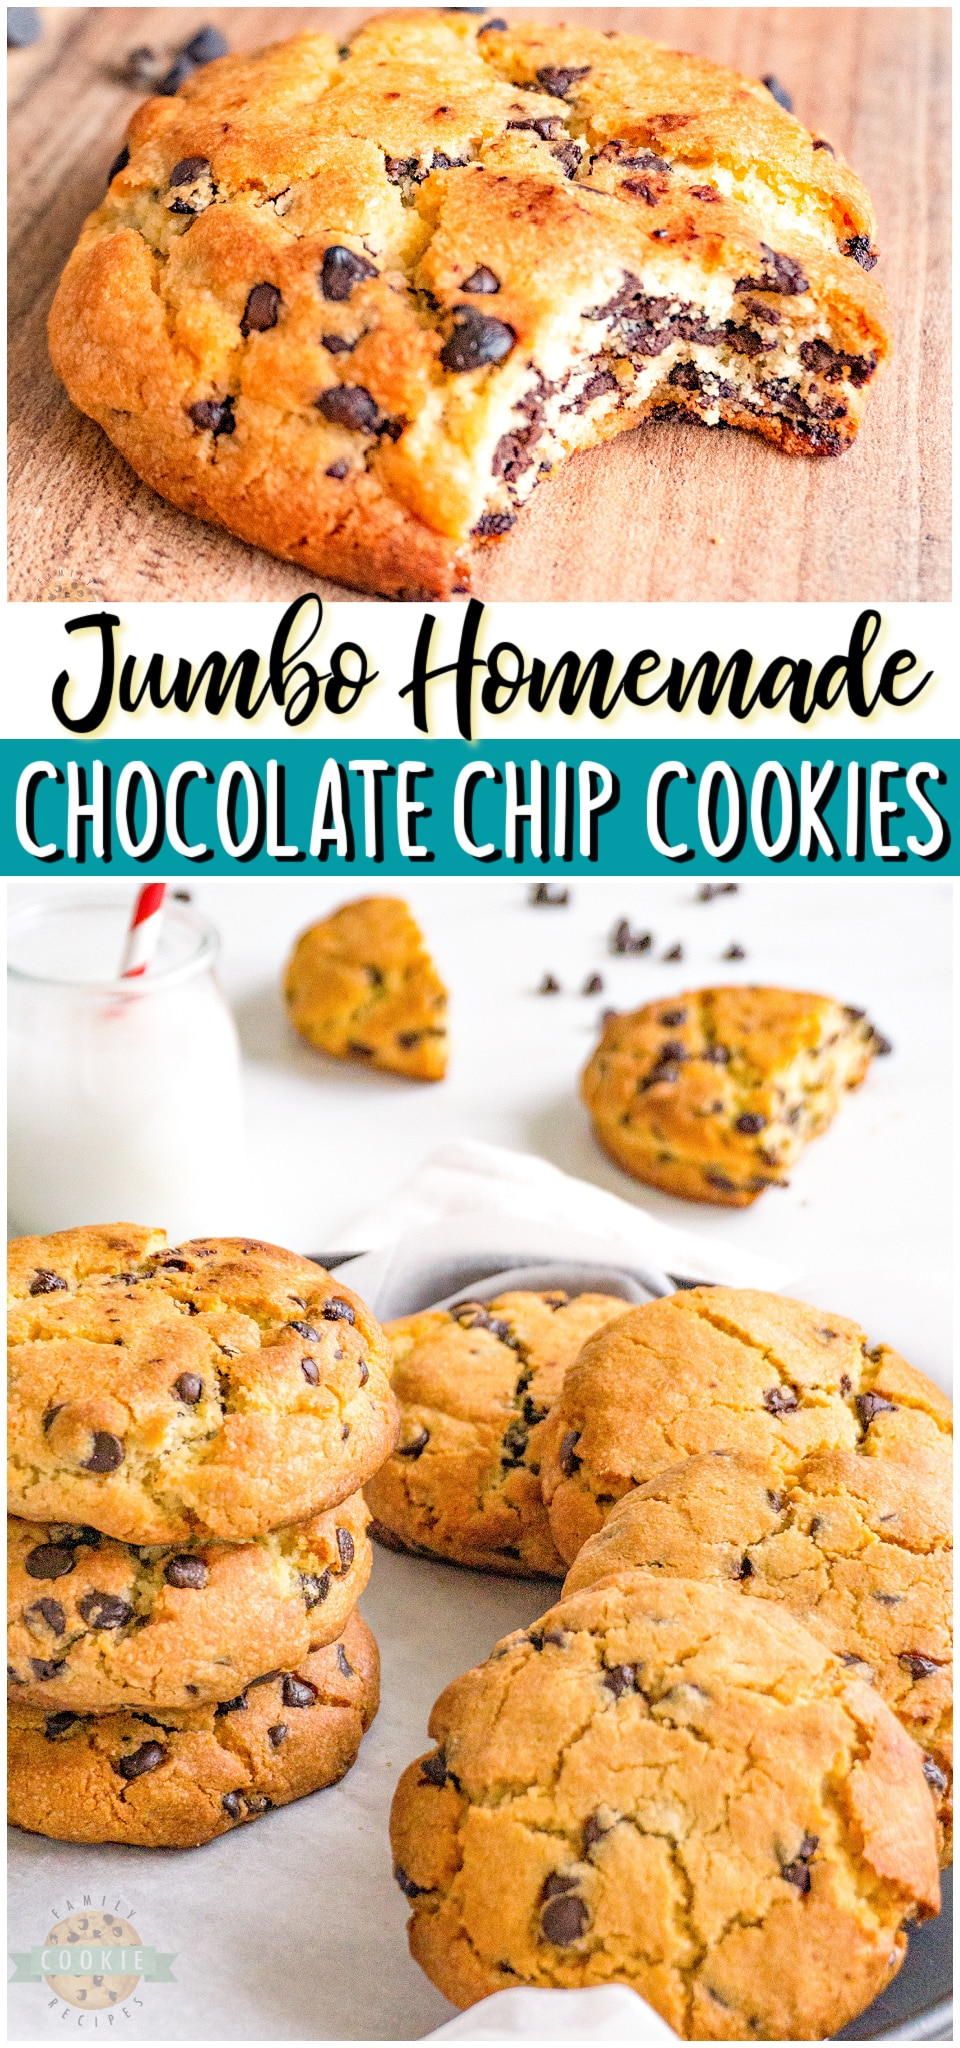 Jumbo Chocolate Chip Cookies made with classic ingredients & twice the size of traditional cookies! Soft, chewy & thick chocolate chip recipe perfect for cookie lovers!#chocolatechip #cookies #jumbo #big #baking #homemade #easyrecipe from FAMILY COOKIE RECIPES via @buttergirls